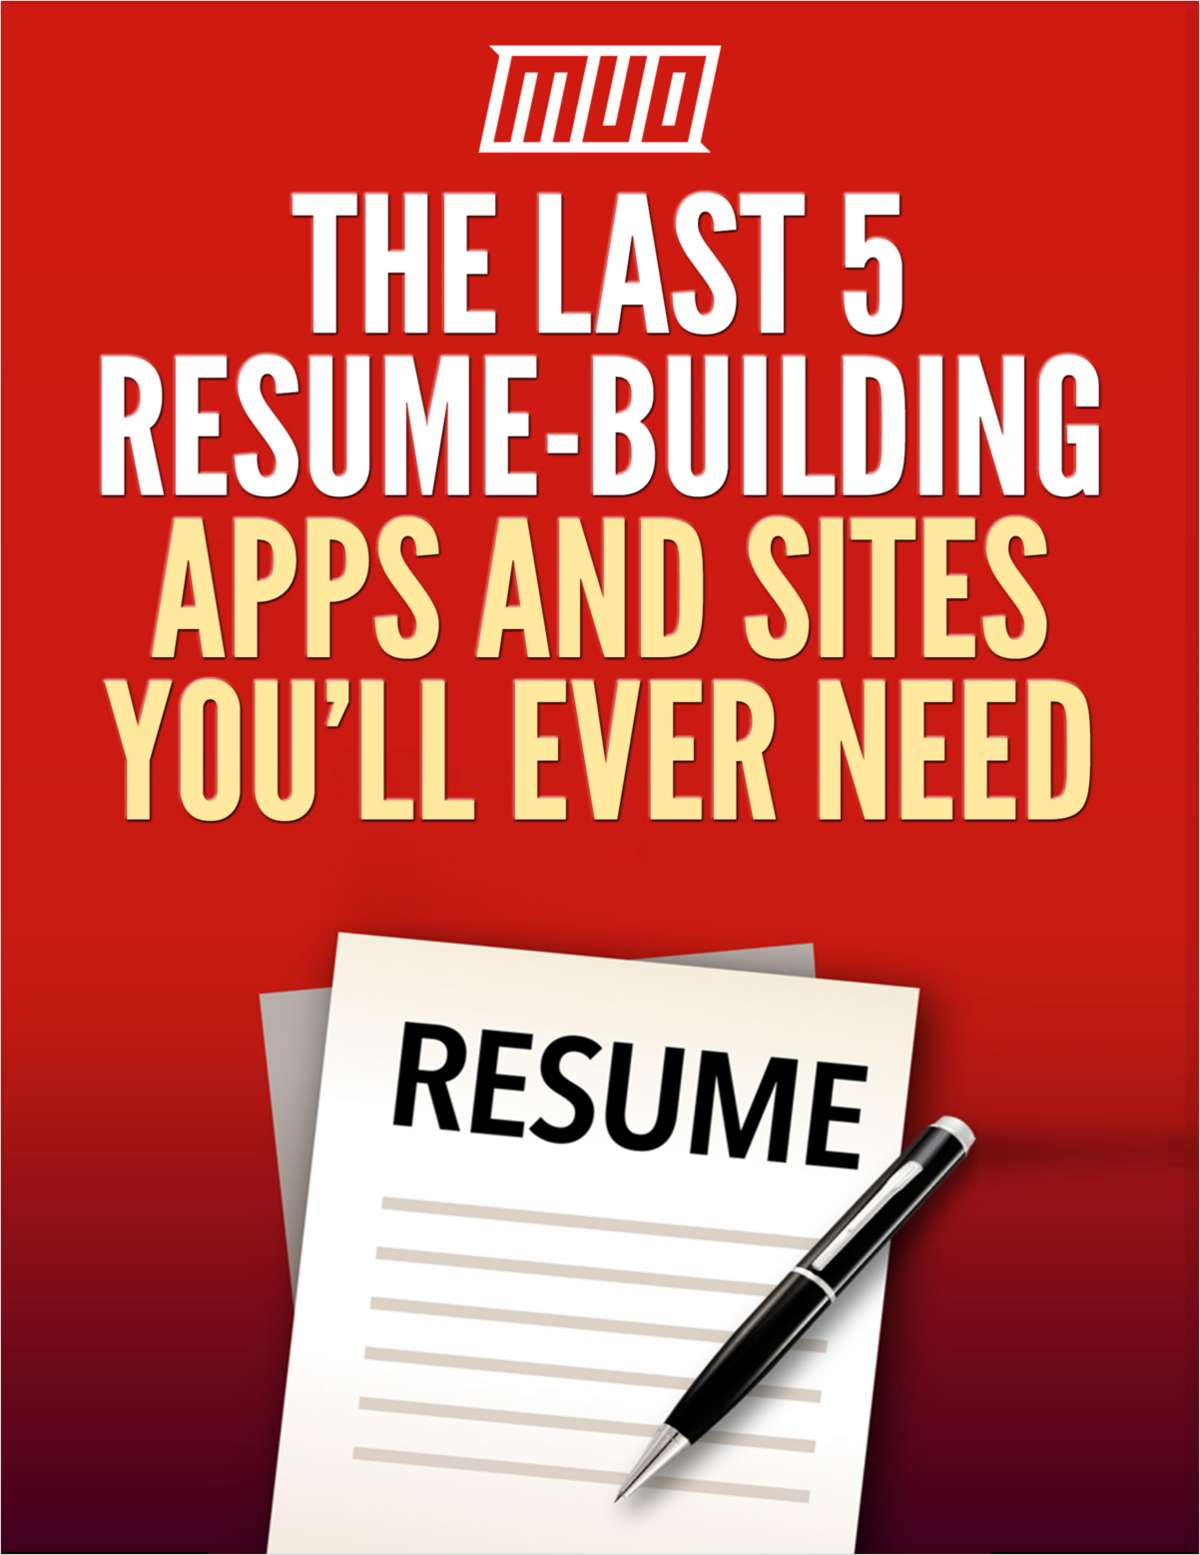 The Last 5 Resume-Building Apps and Sites You'll Ever Need